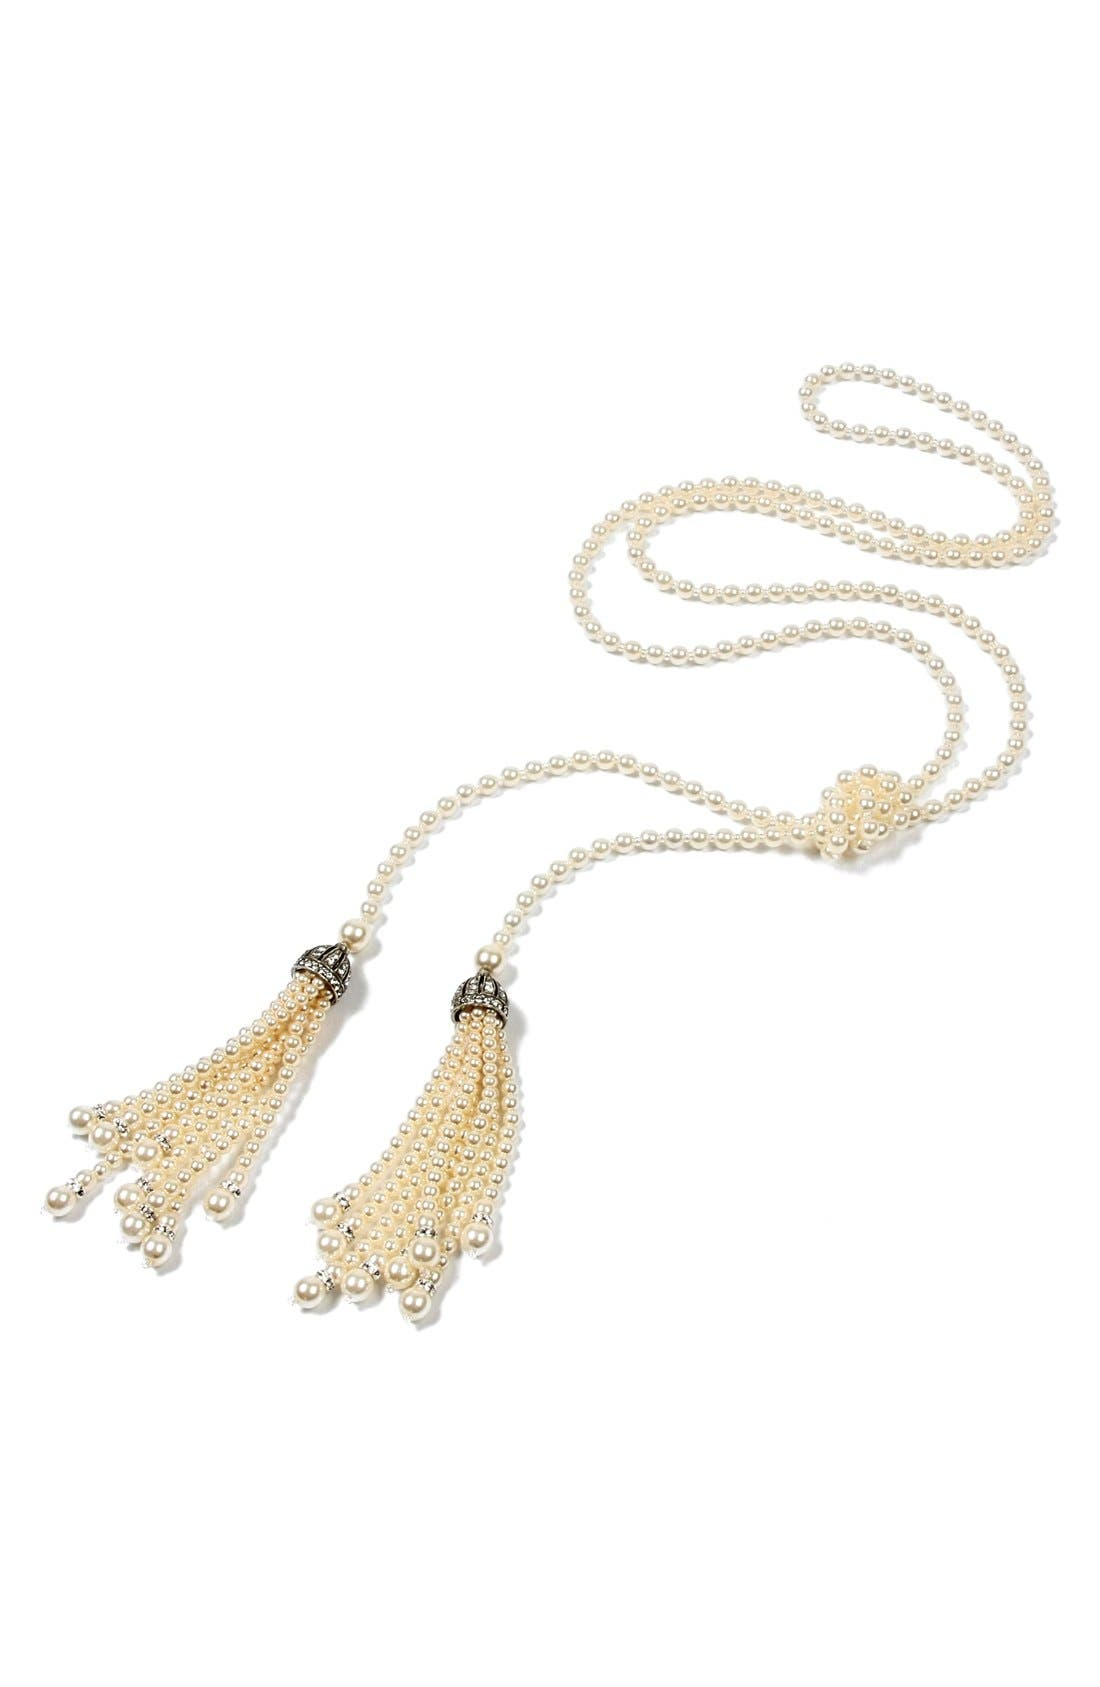 Glass Pearl Tassel Necklace,                             Main thumbnail 1, color,                             IVORY